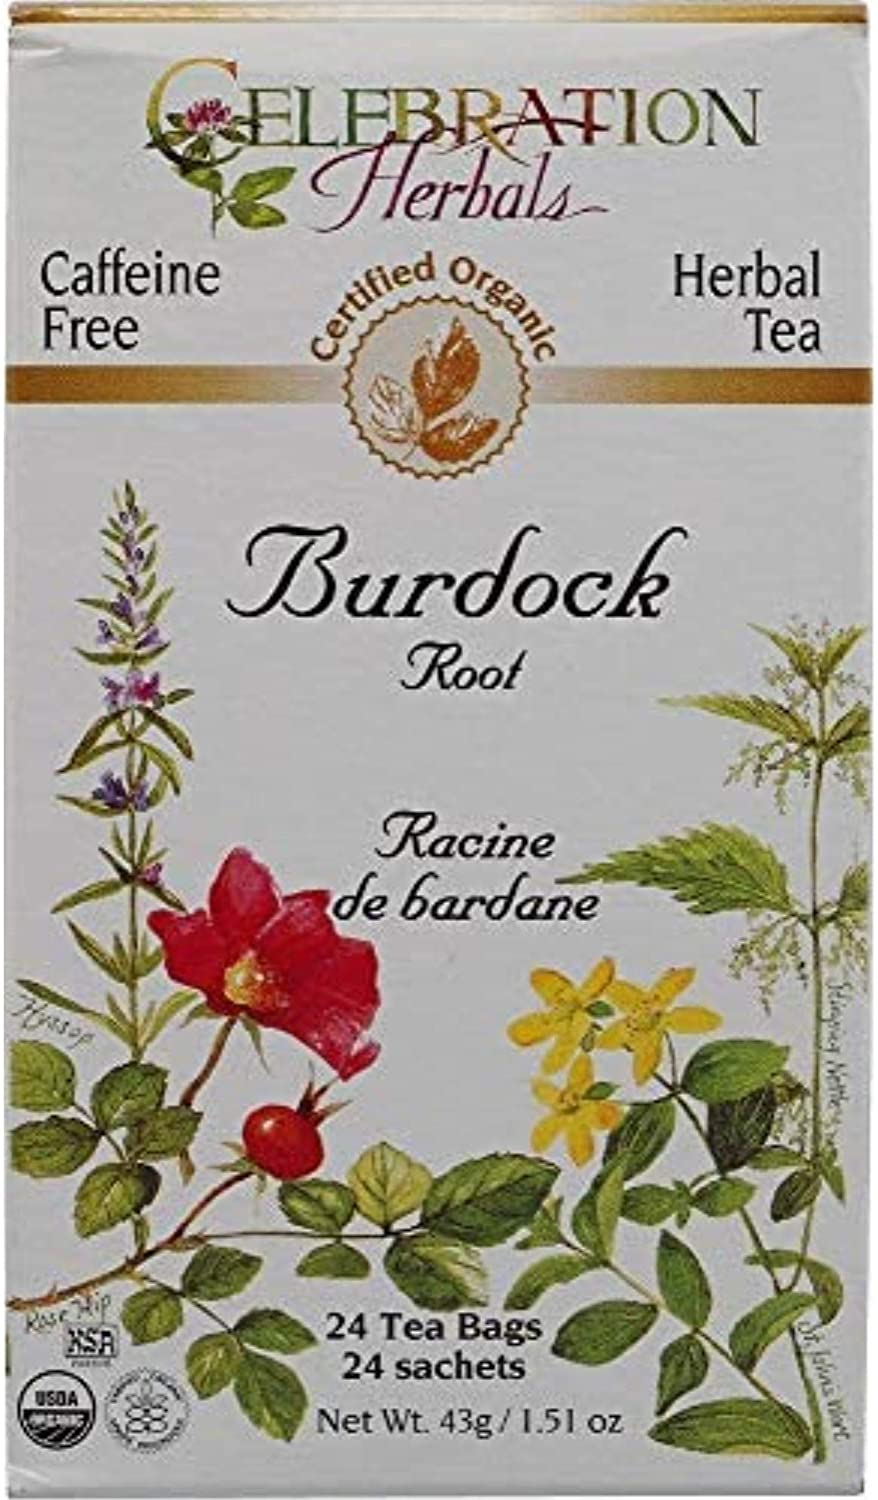 Celebration Herbals Teabags Herbal Tea Burdock Root Organic - 24 Herbal Tea Bags